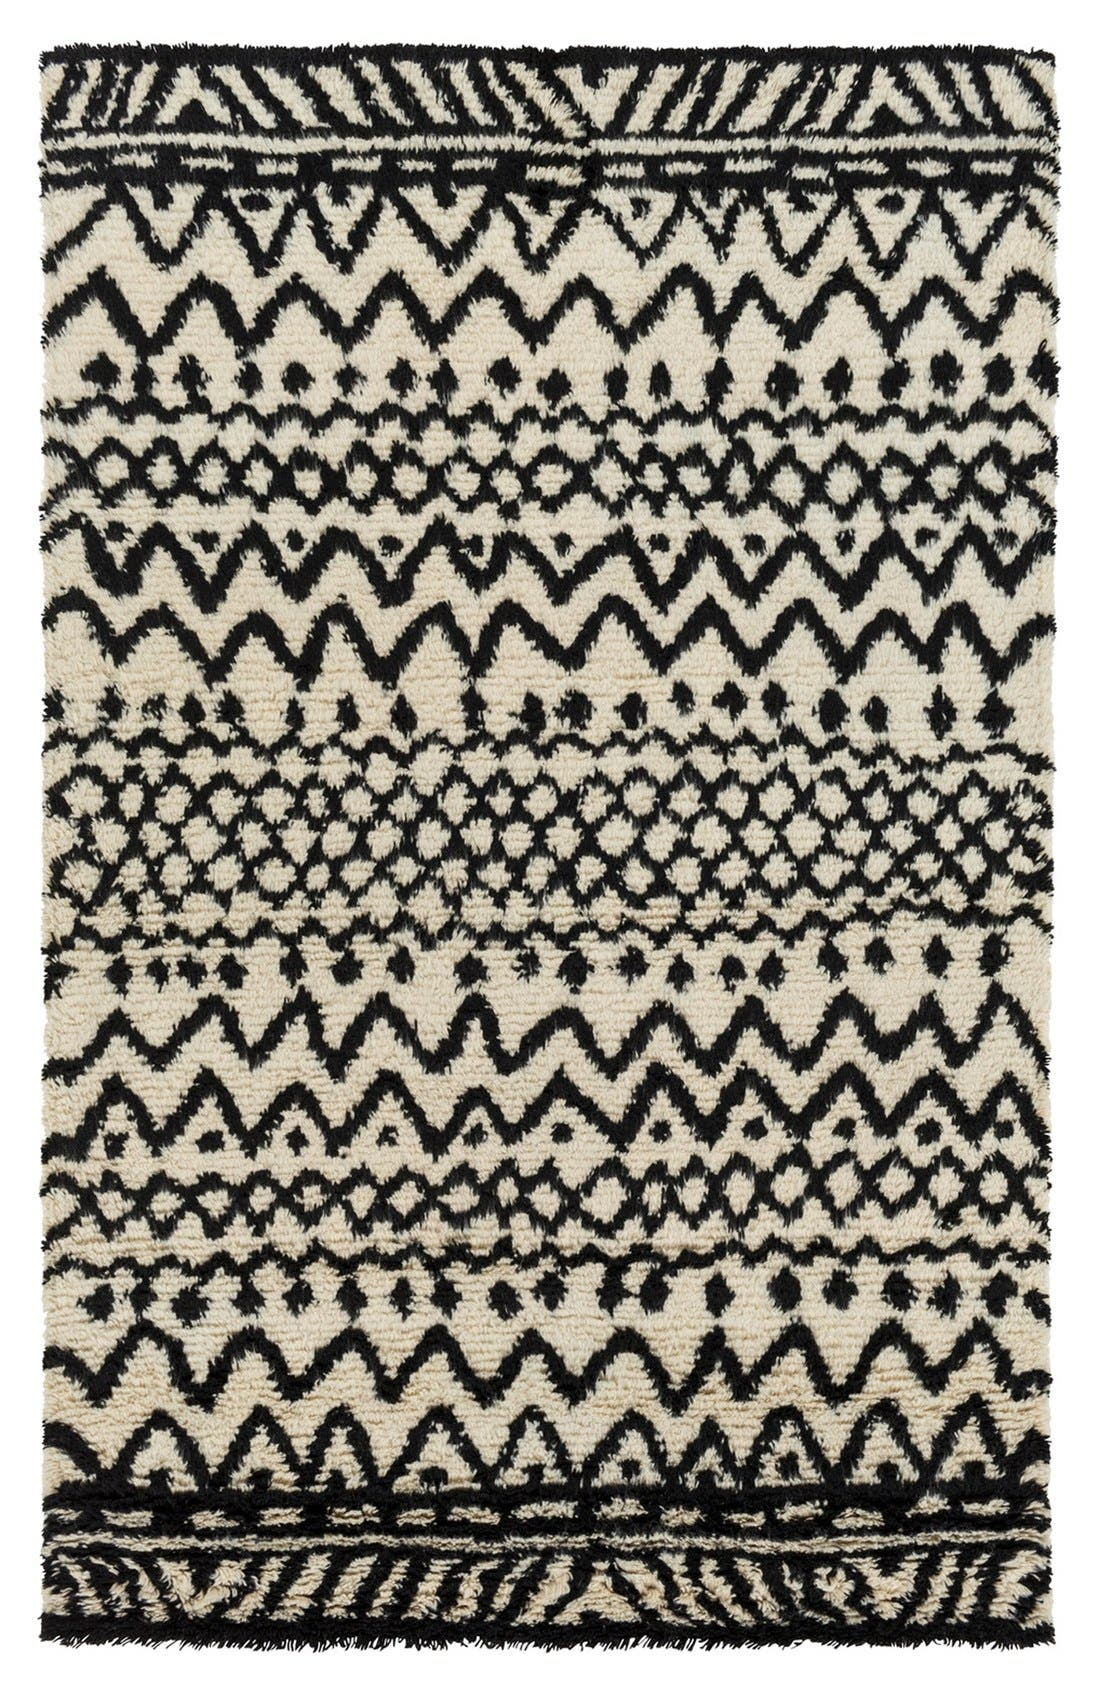 Alternate Image 1 Selected - Surya Home 'Dwell C' Wool Rug